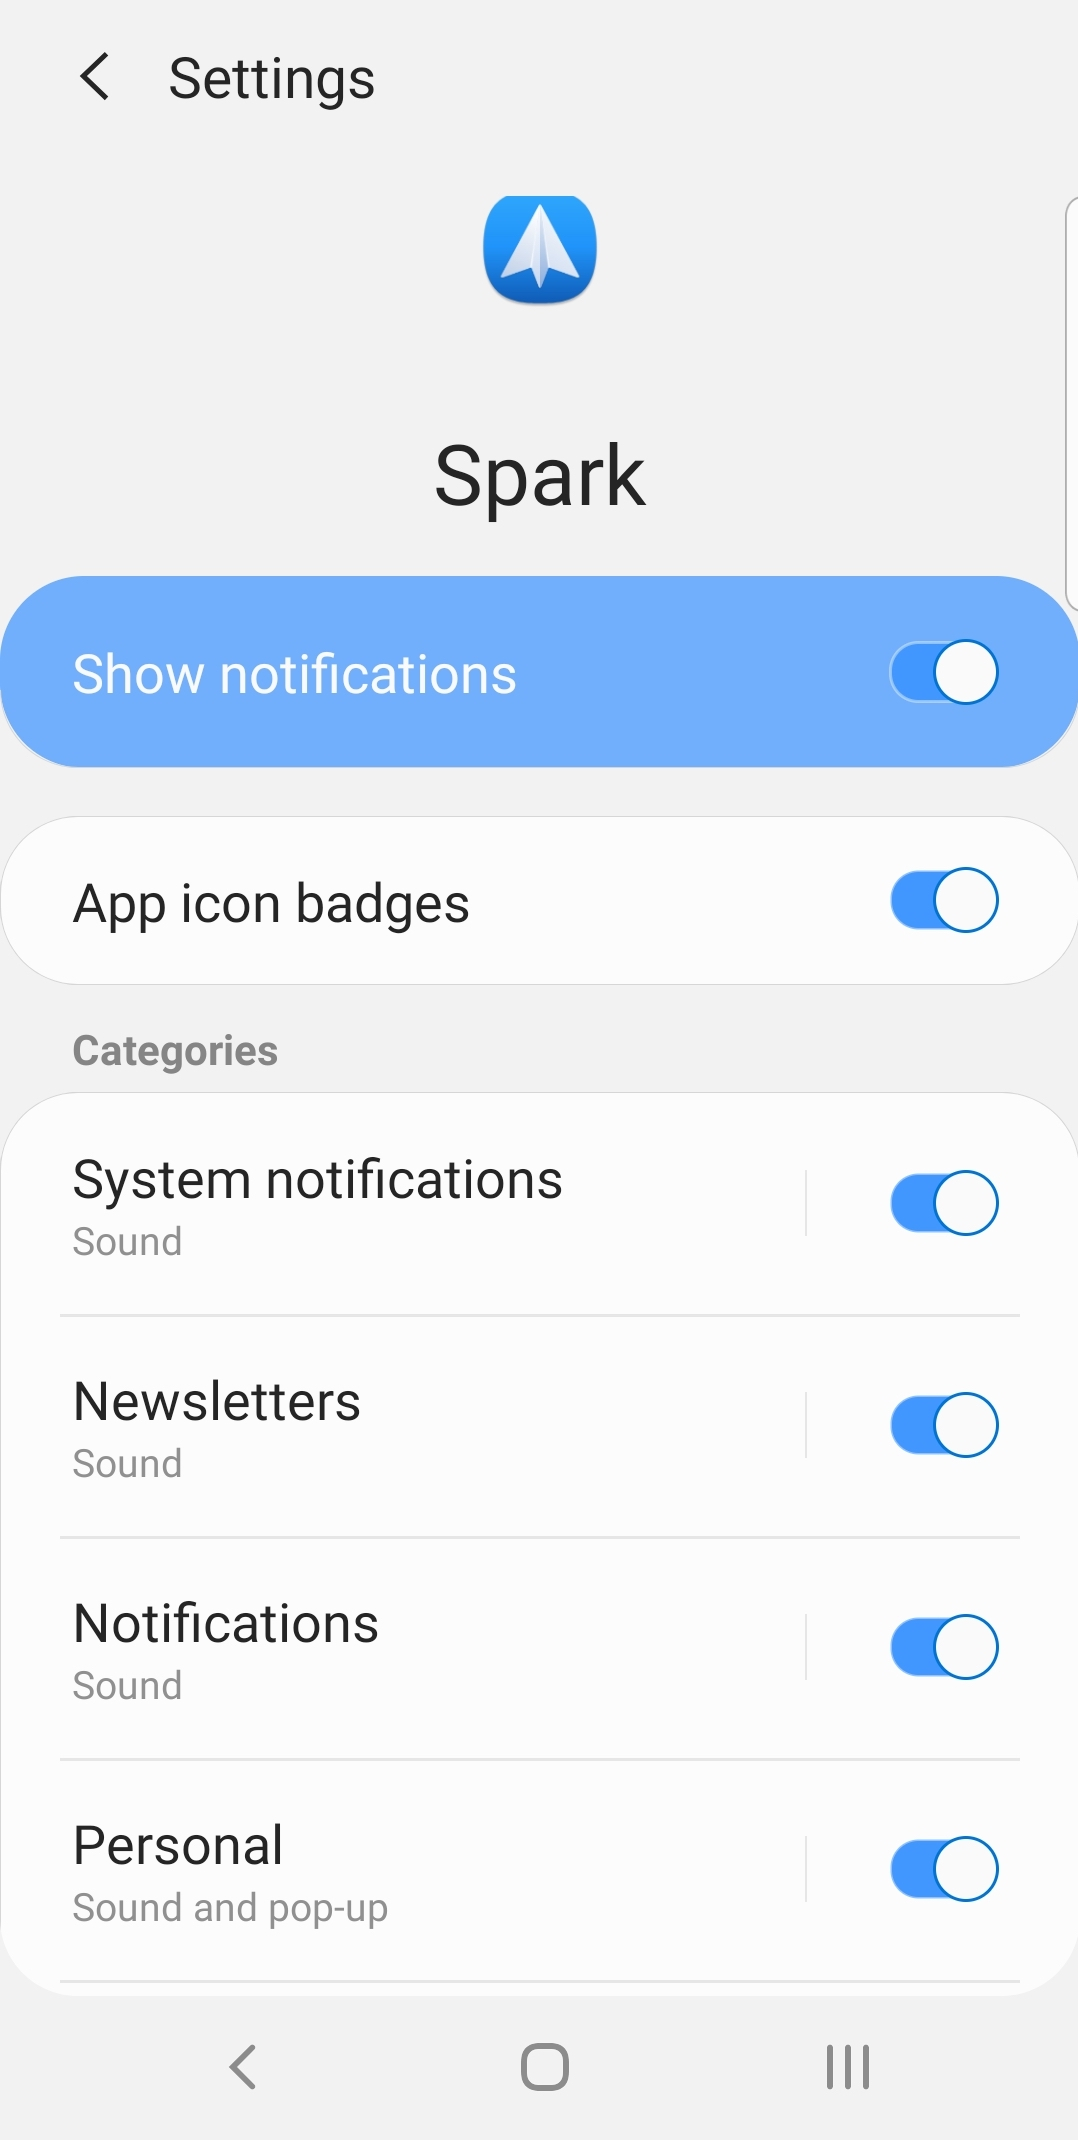 How to manage email notifications | Spark Help Center